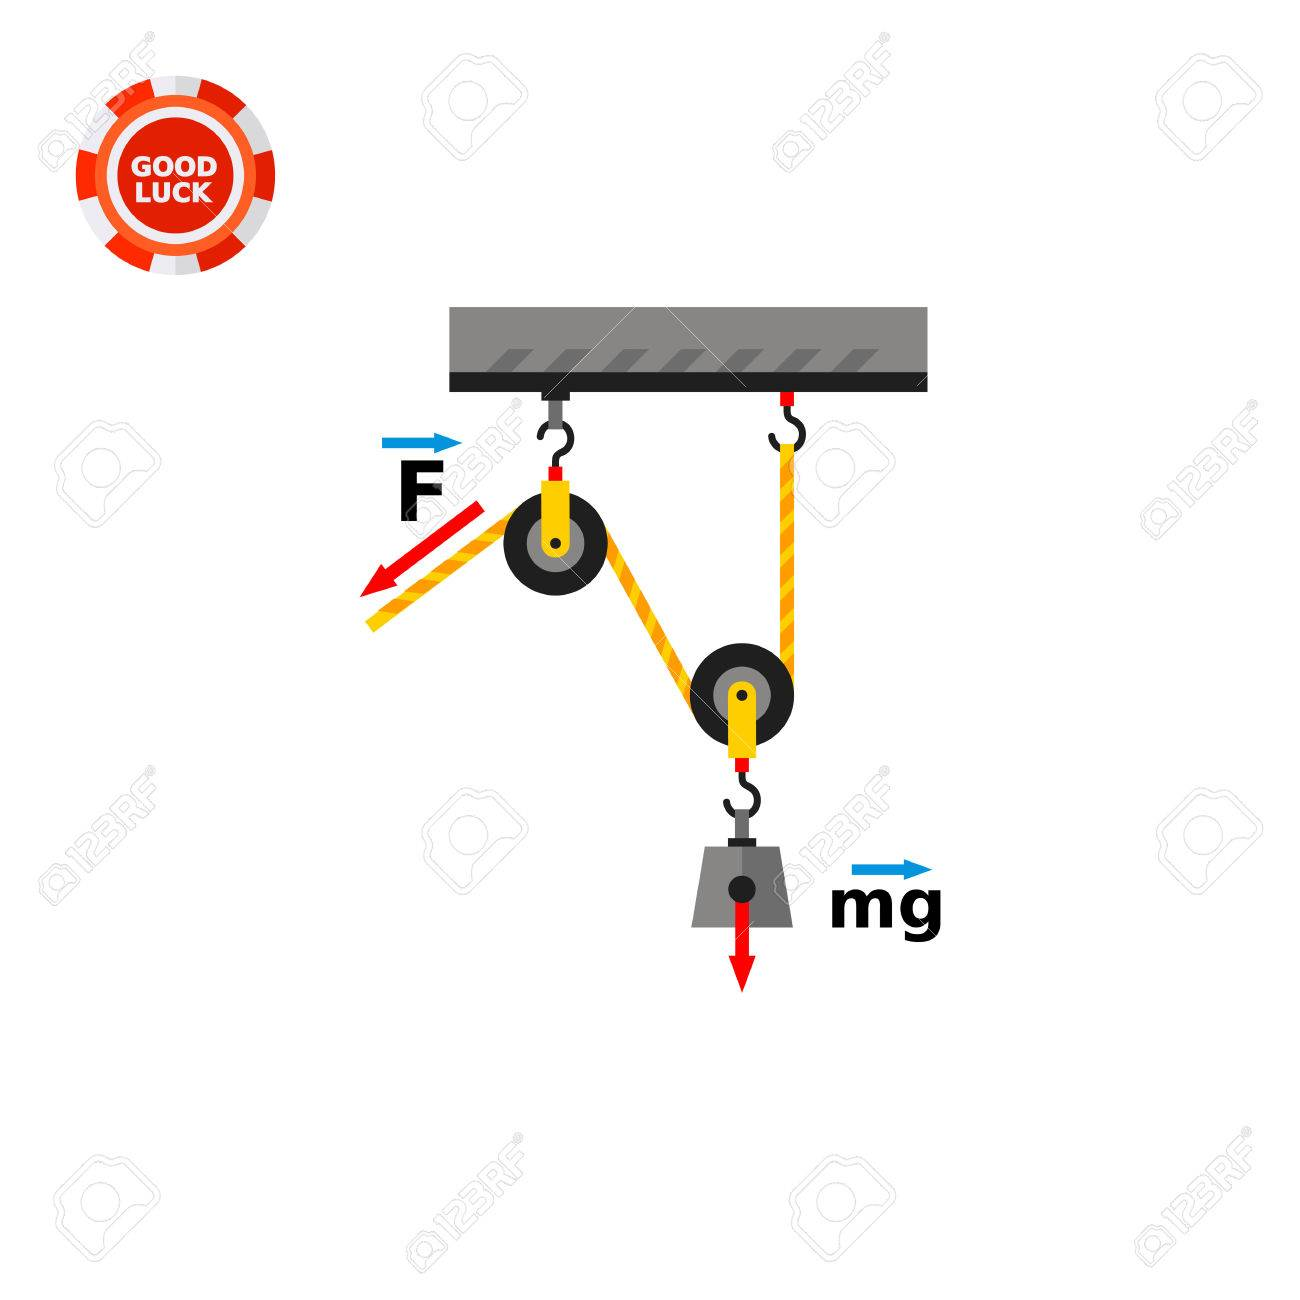 Free Pulley Cliparts, Download Free Clip Art, Free Clip Art on Clipart  Library